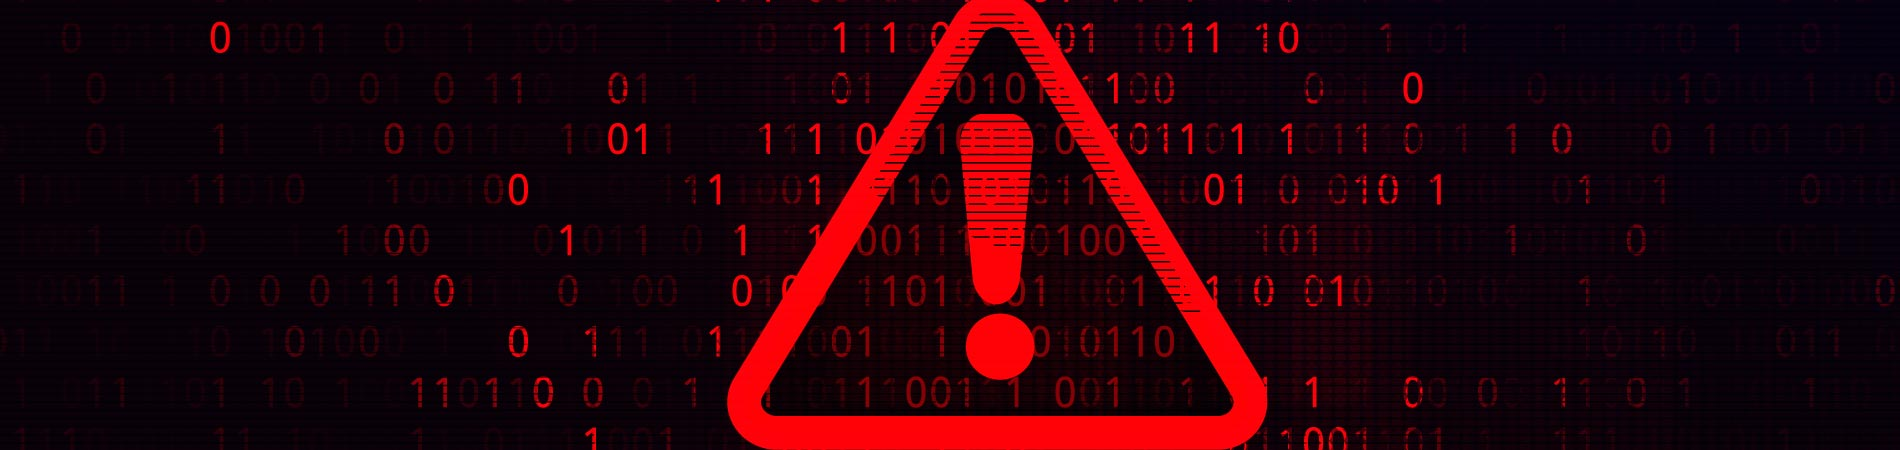 Warning symbol in red on a black and red background